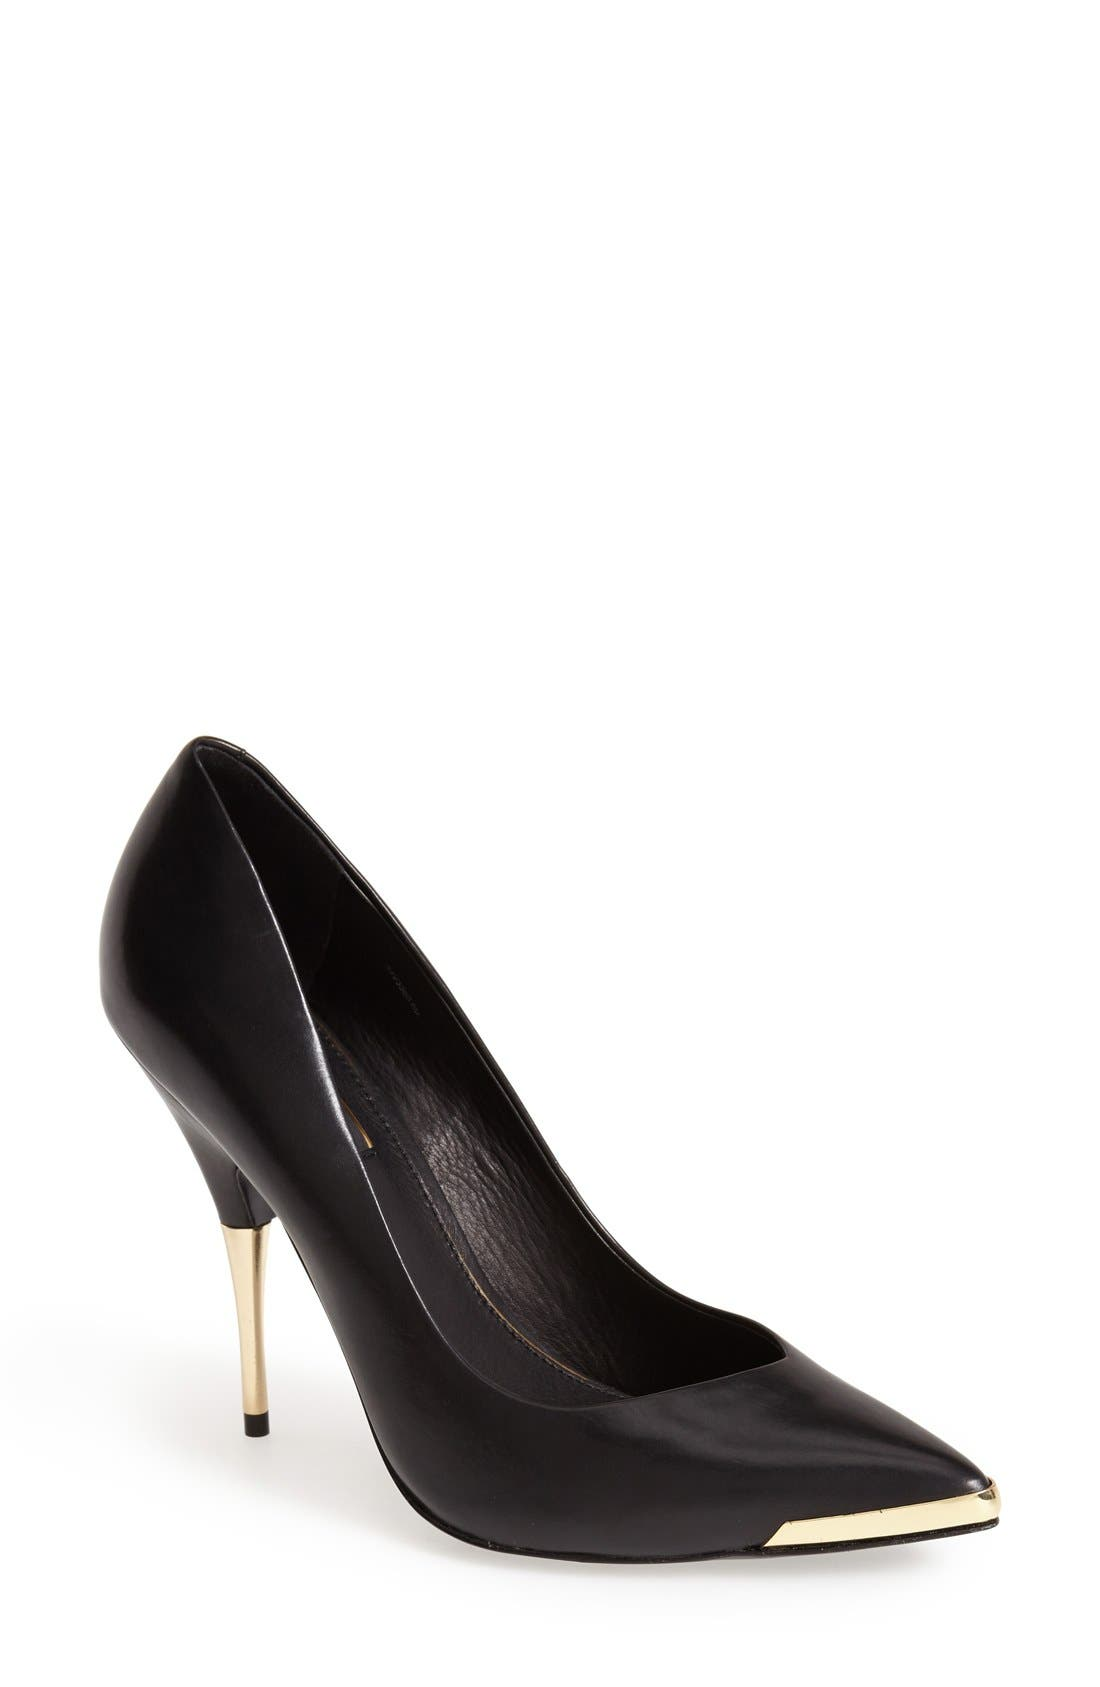 Main Image - Rachel Zoe 'Carina' Leather Pointy Toe Pump (Women)